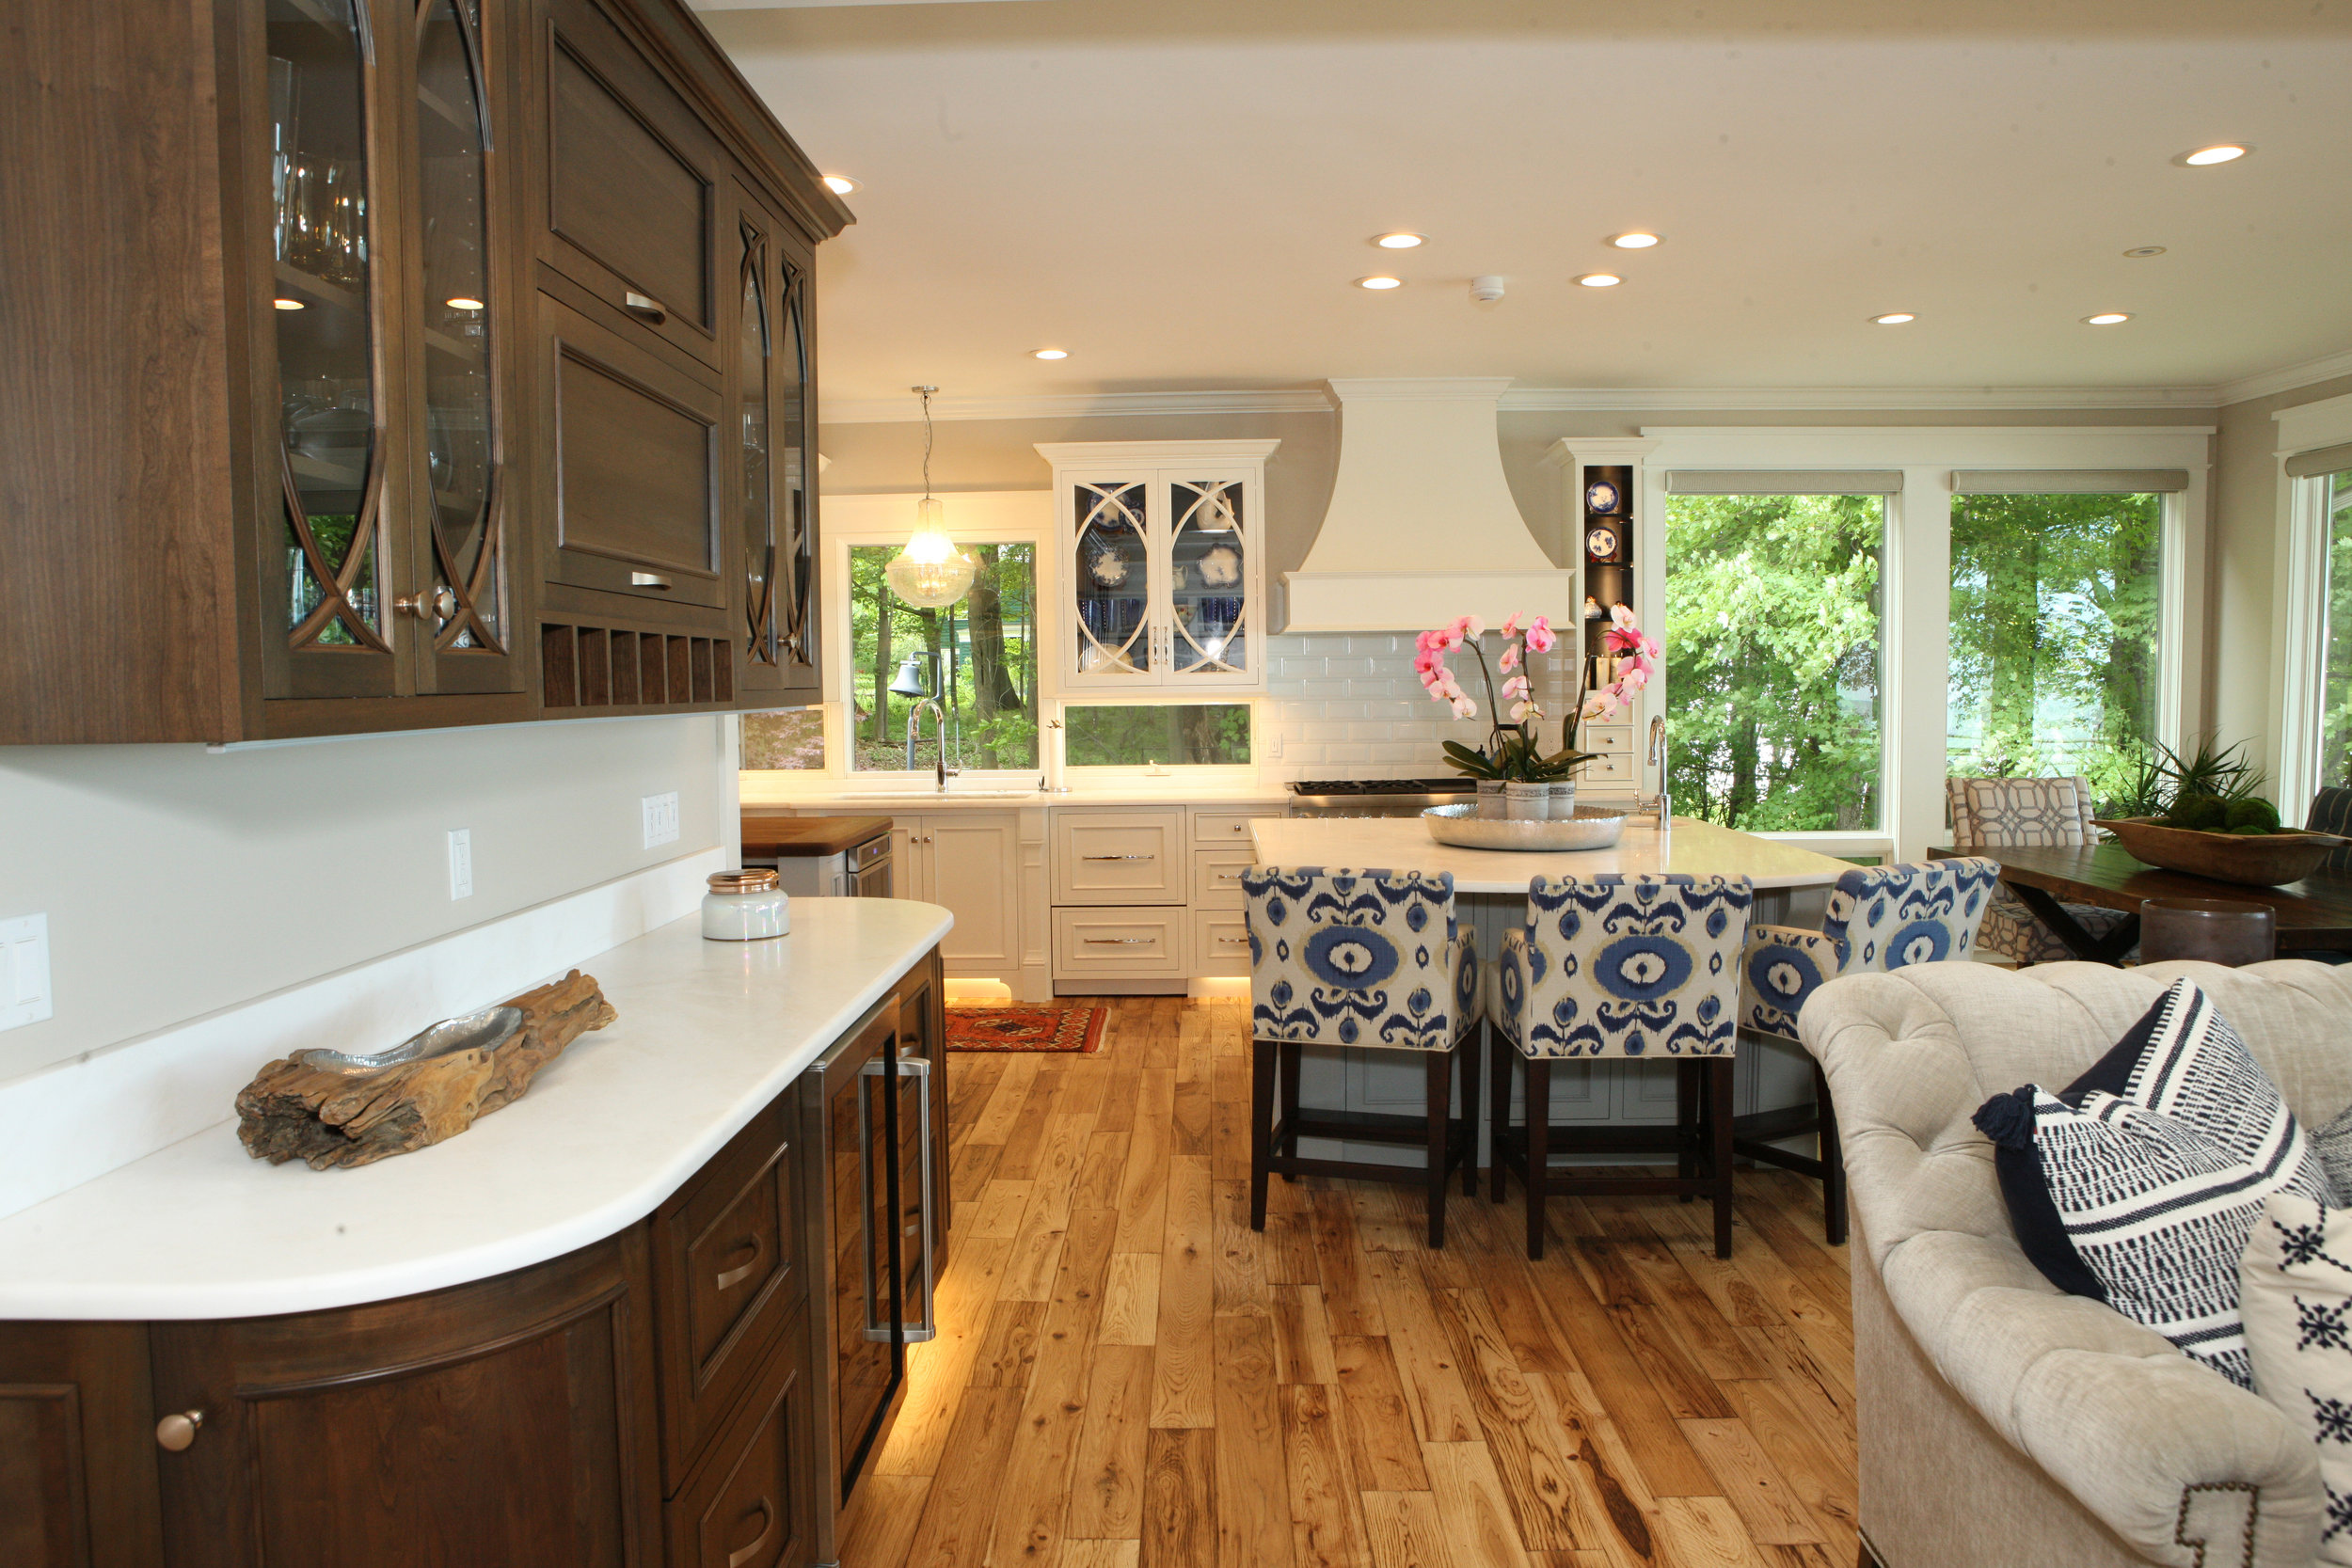 Warm hand scraped hickory floors leading up to sophisticated white cabinets, dark two-tone interiors.